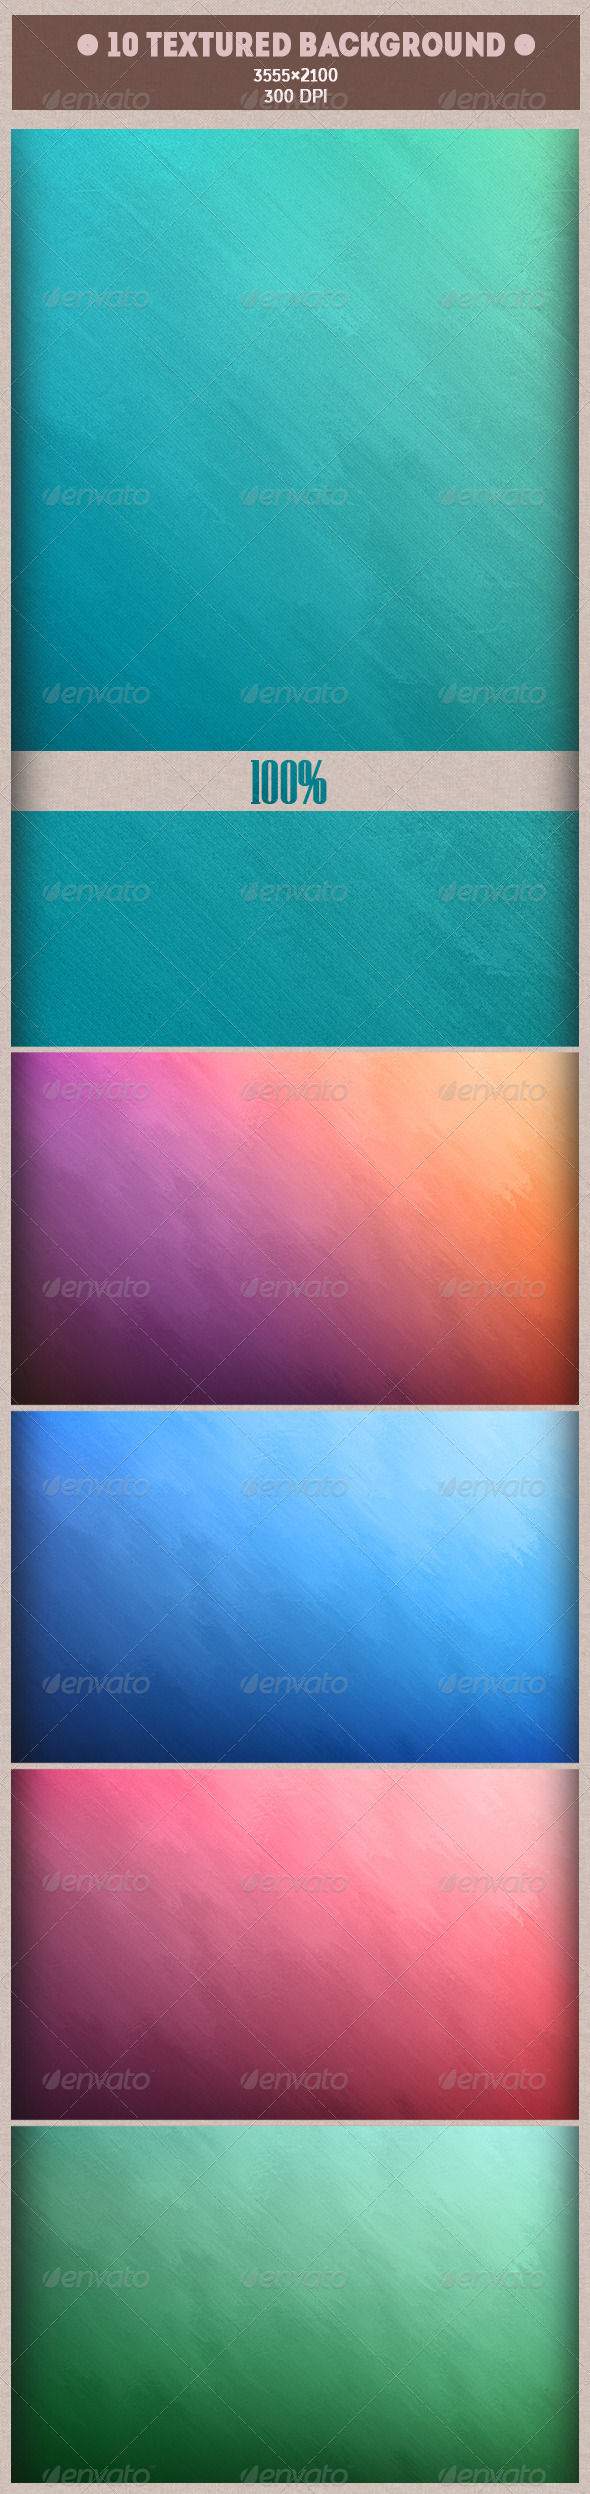 GraphicRiver 10 Textured Background 7822882